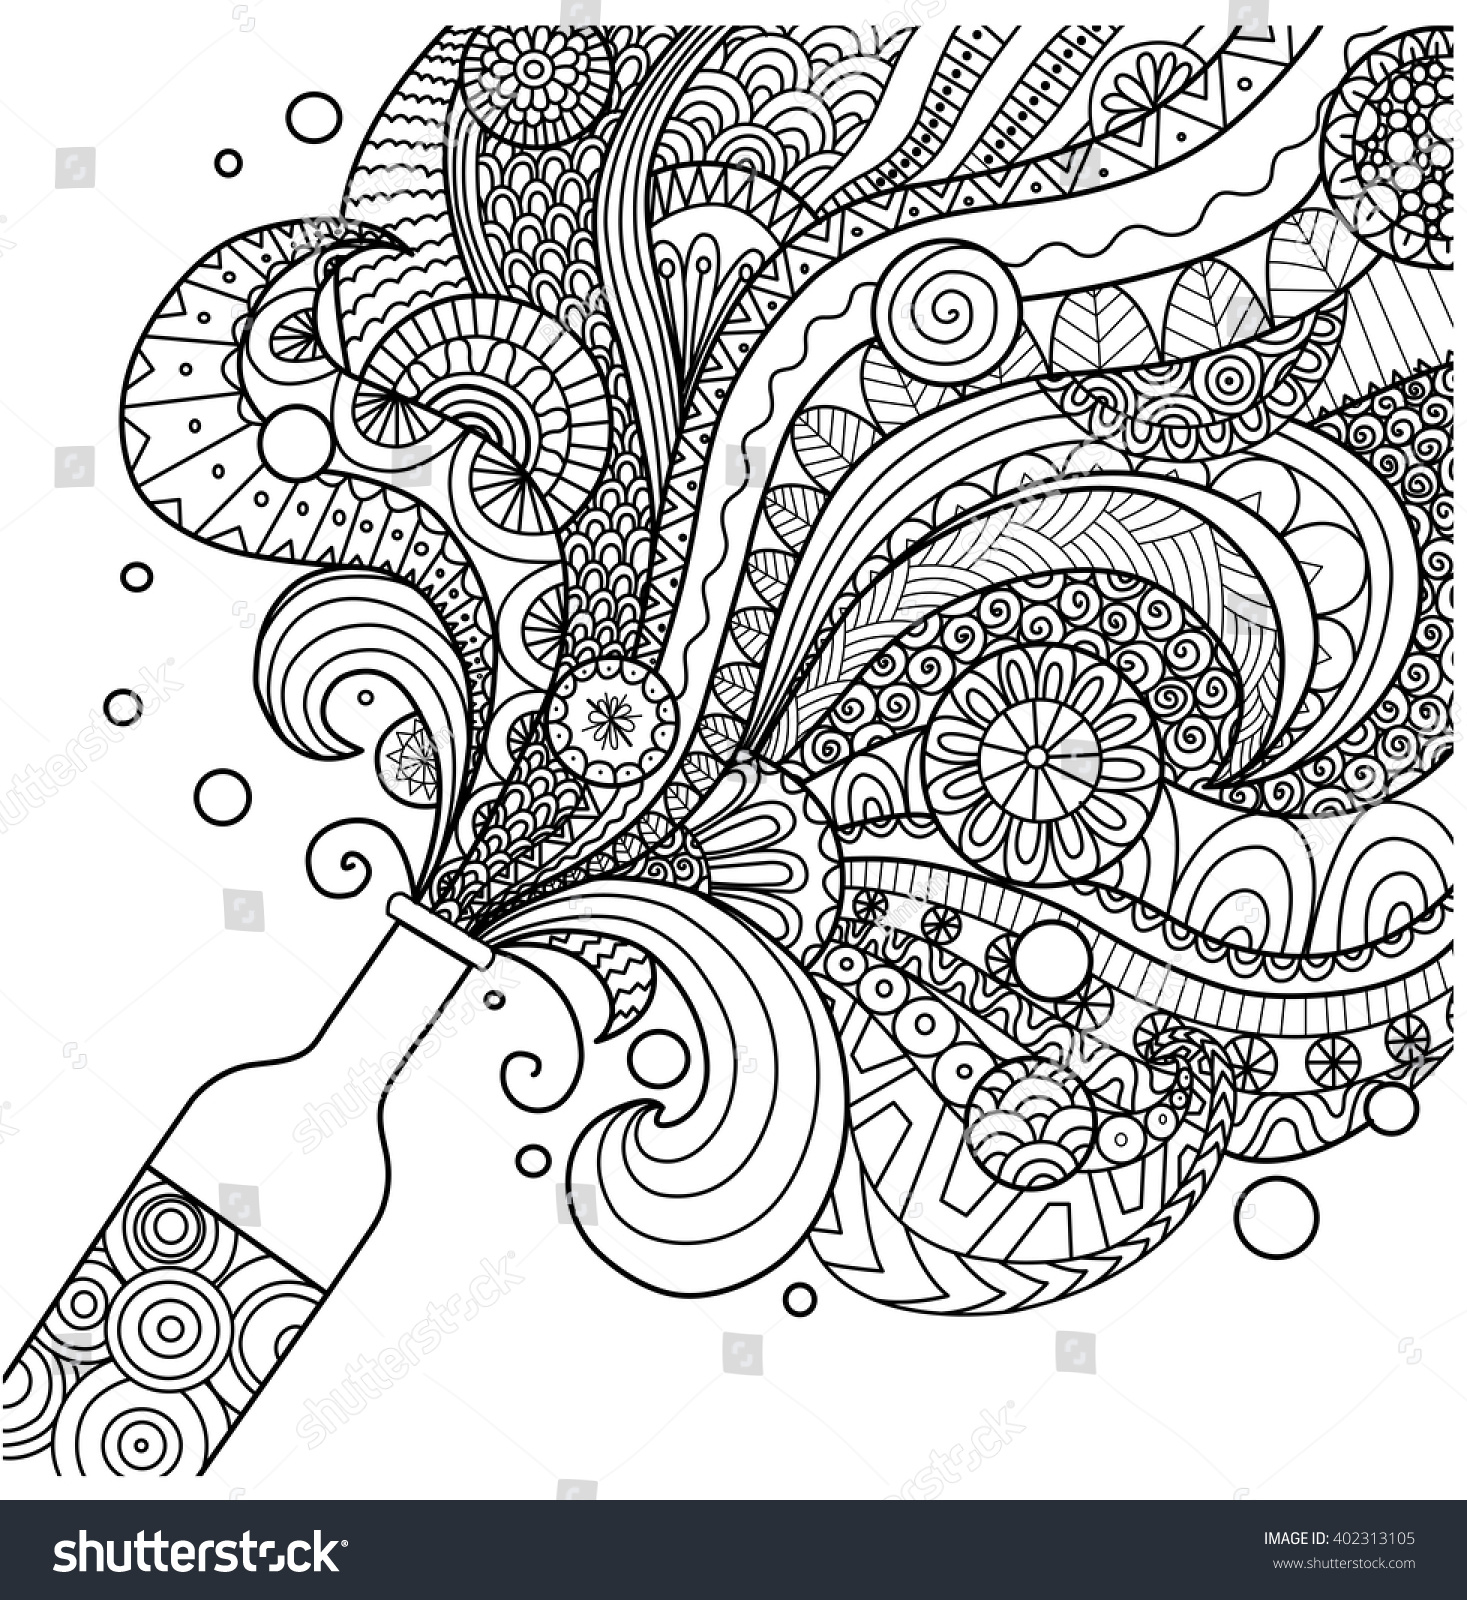 Line Art Poster Design : Champagne bottle line art design coloring stock vector